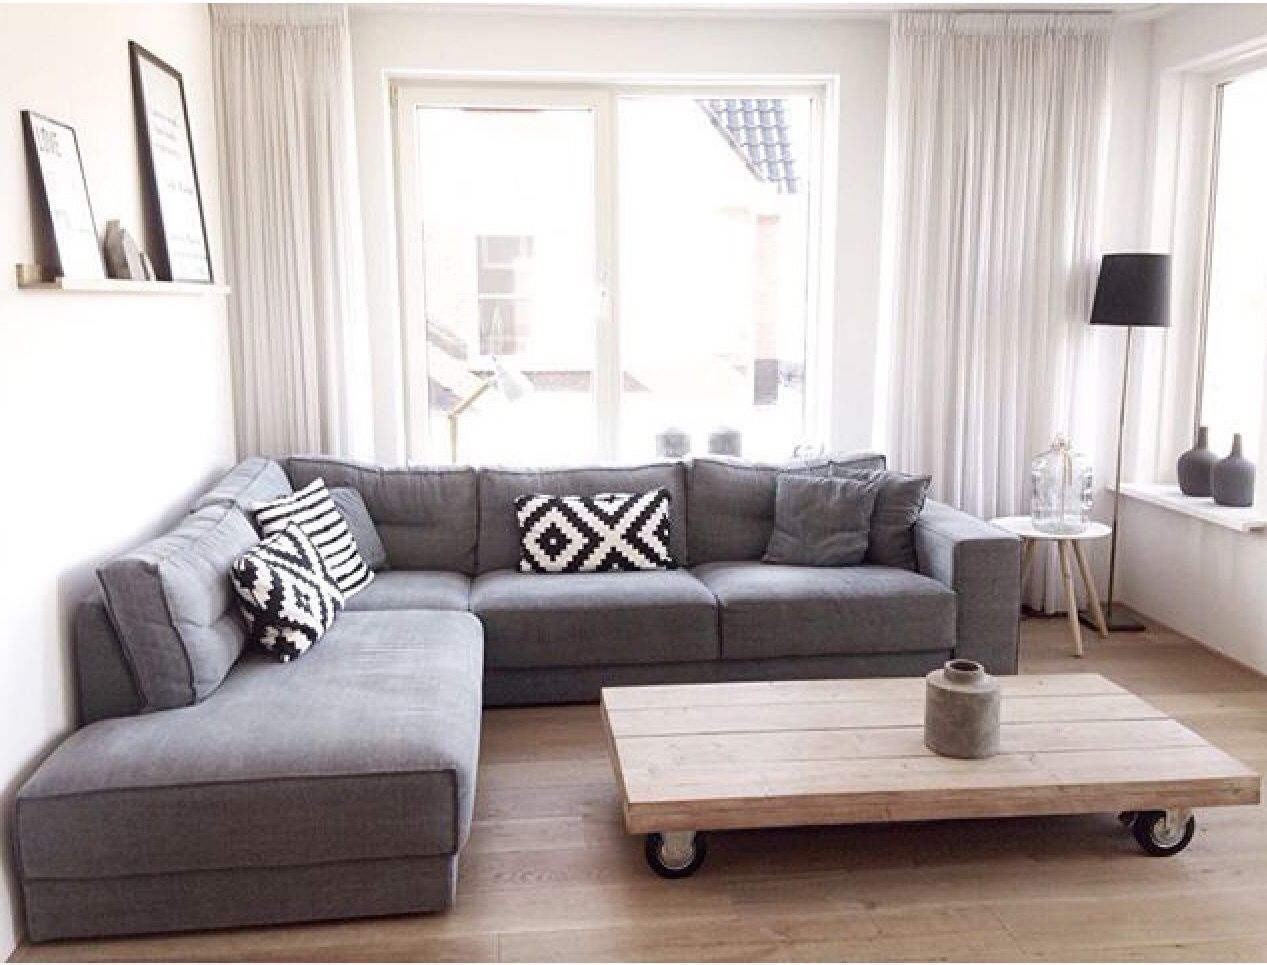 Lounge Stoel Ikea : Pin by dimitra maroulis on furniture in living room ikea